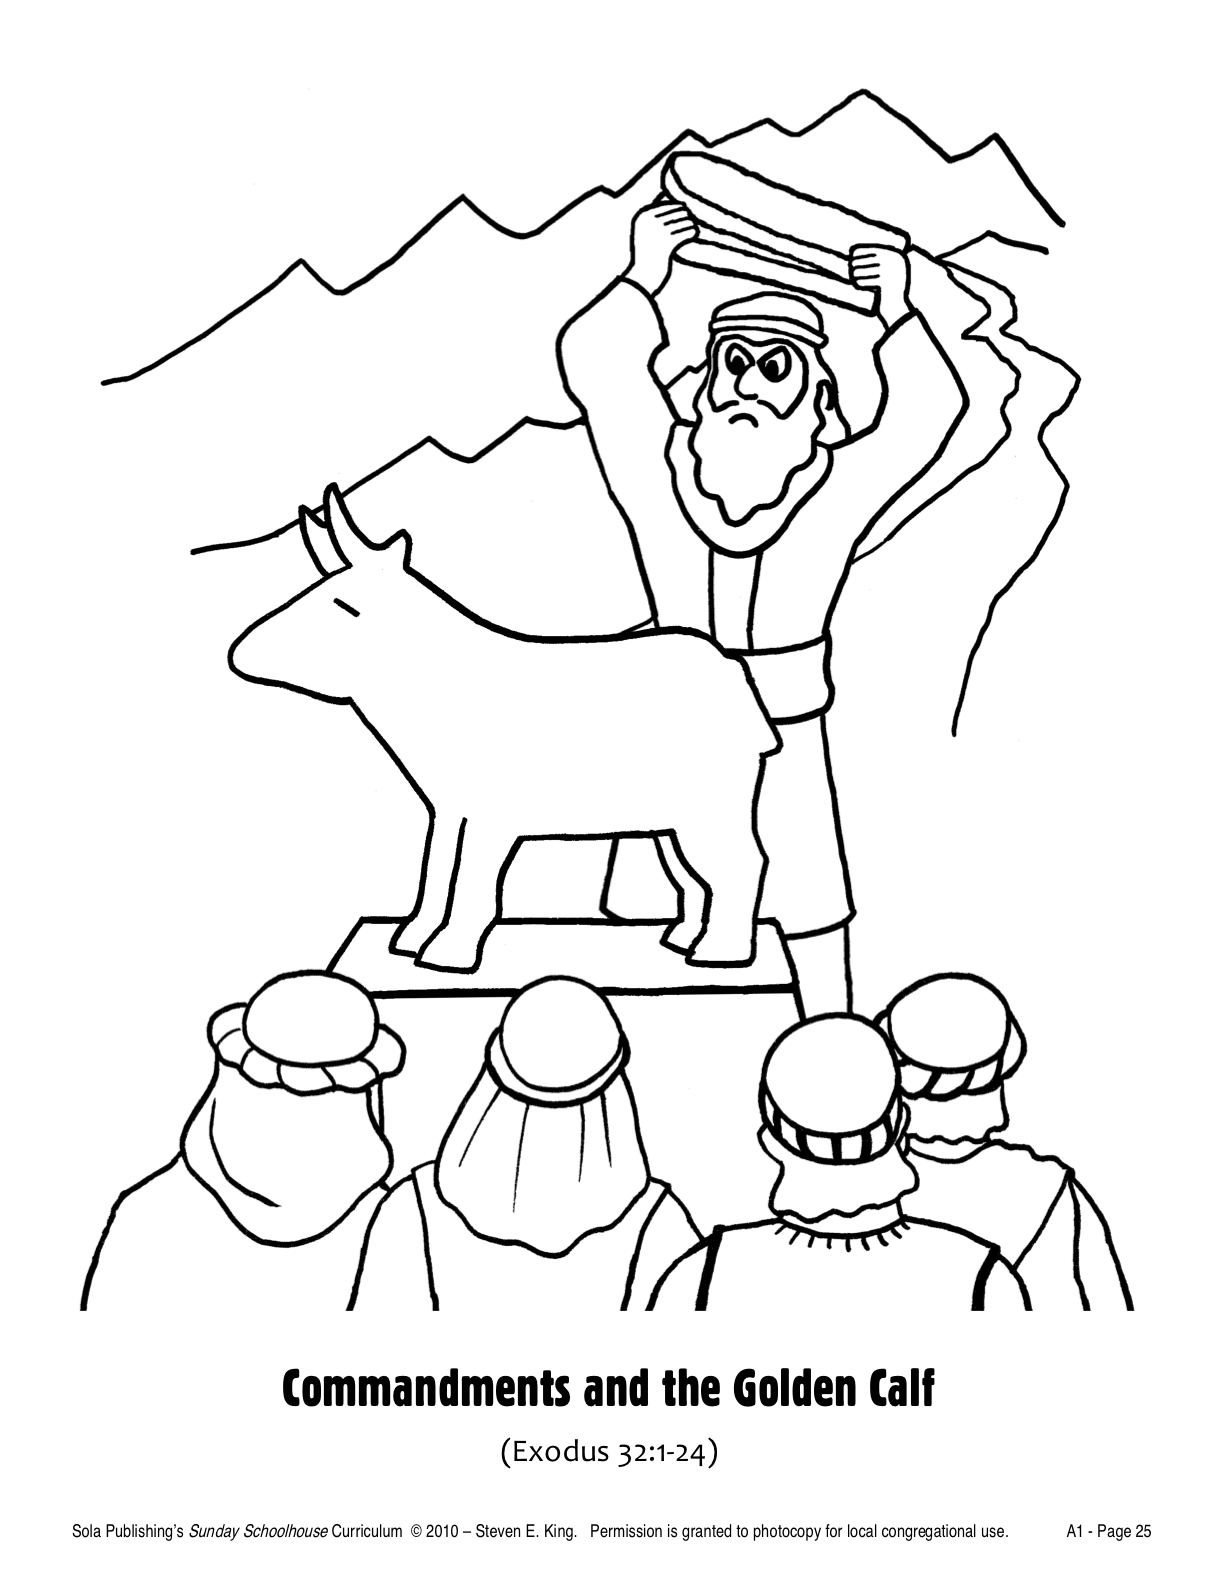 the golden calf coloring page sola sunday school archive october 2010